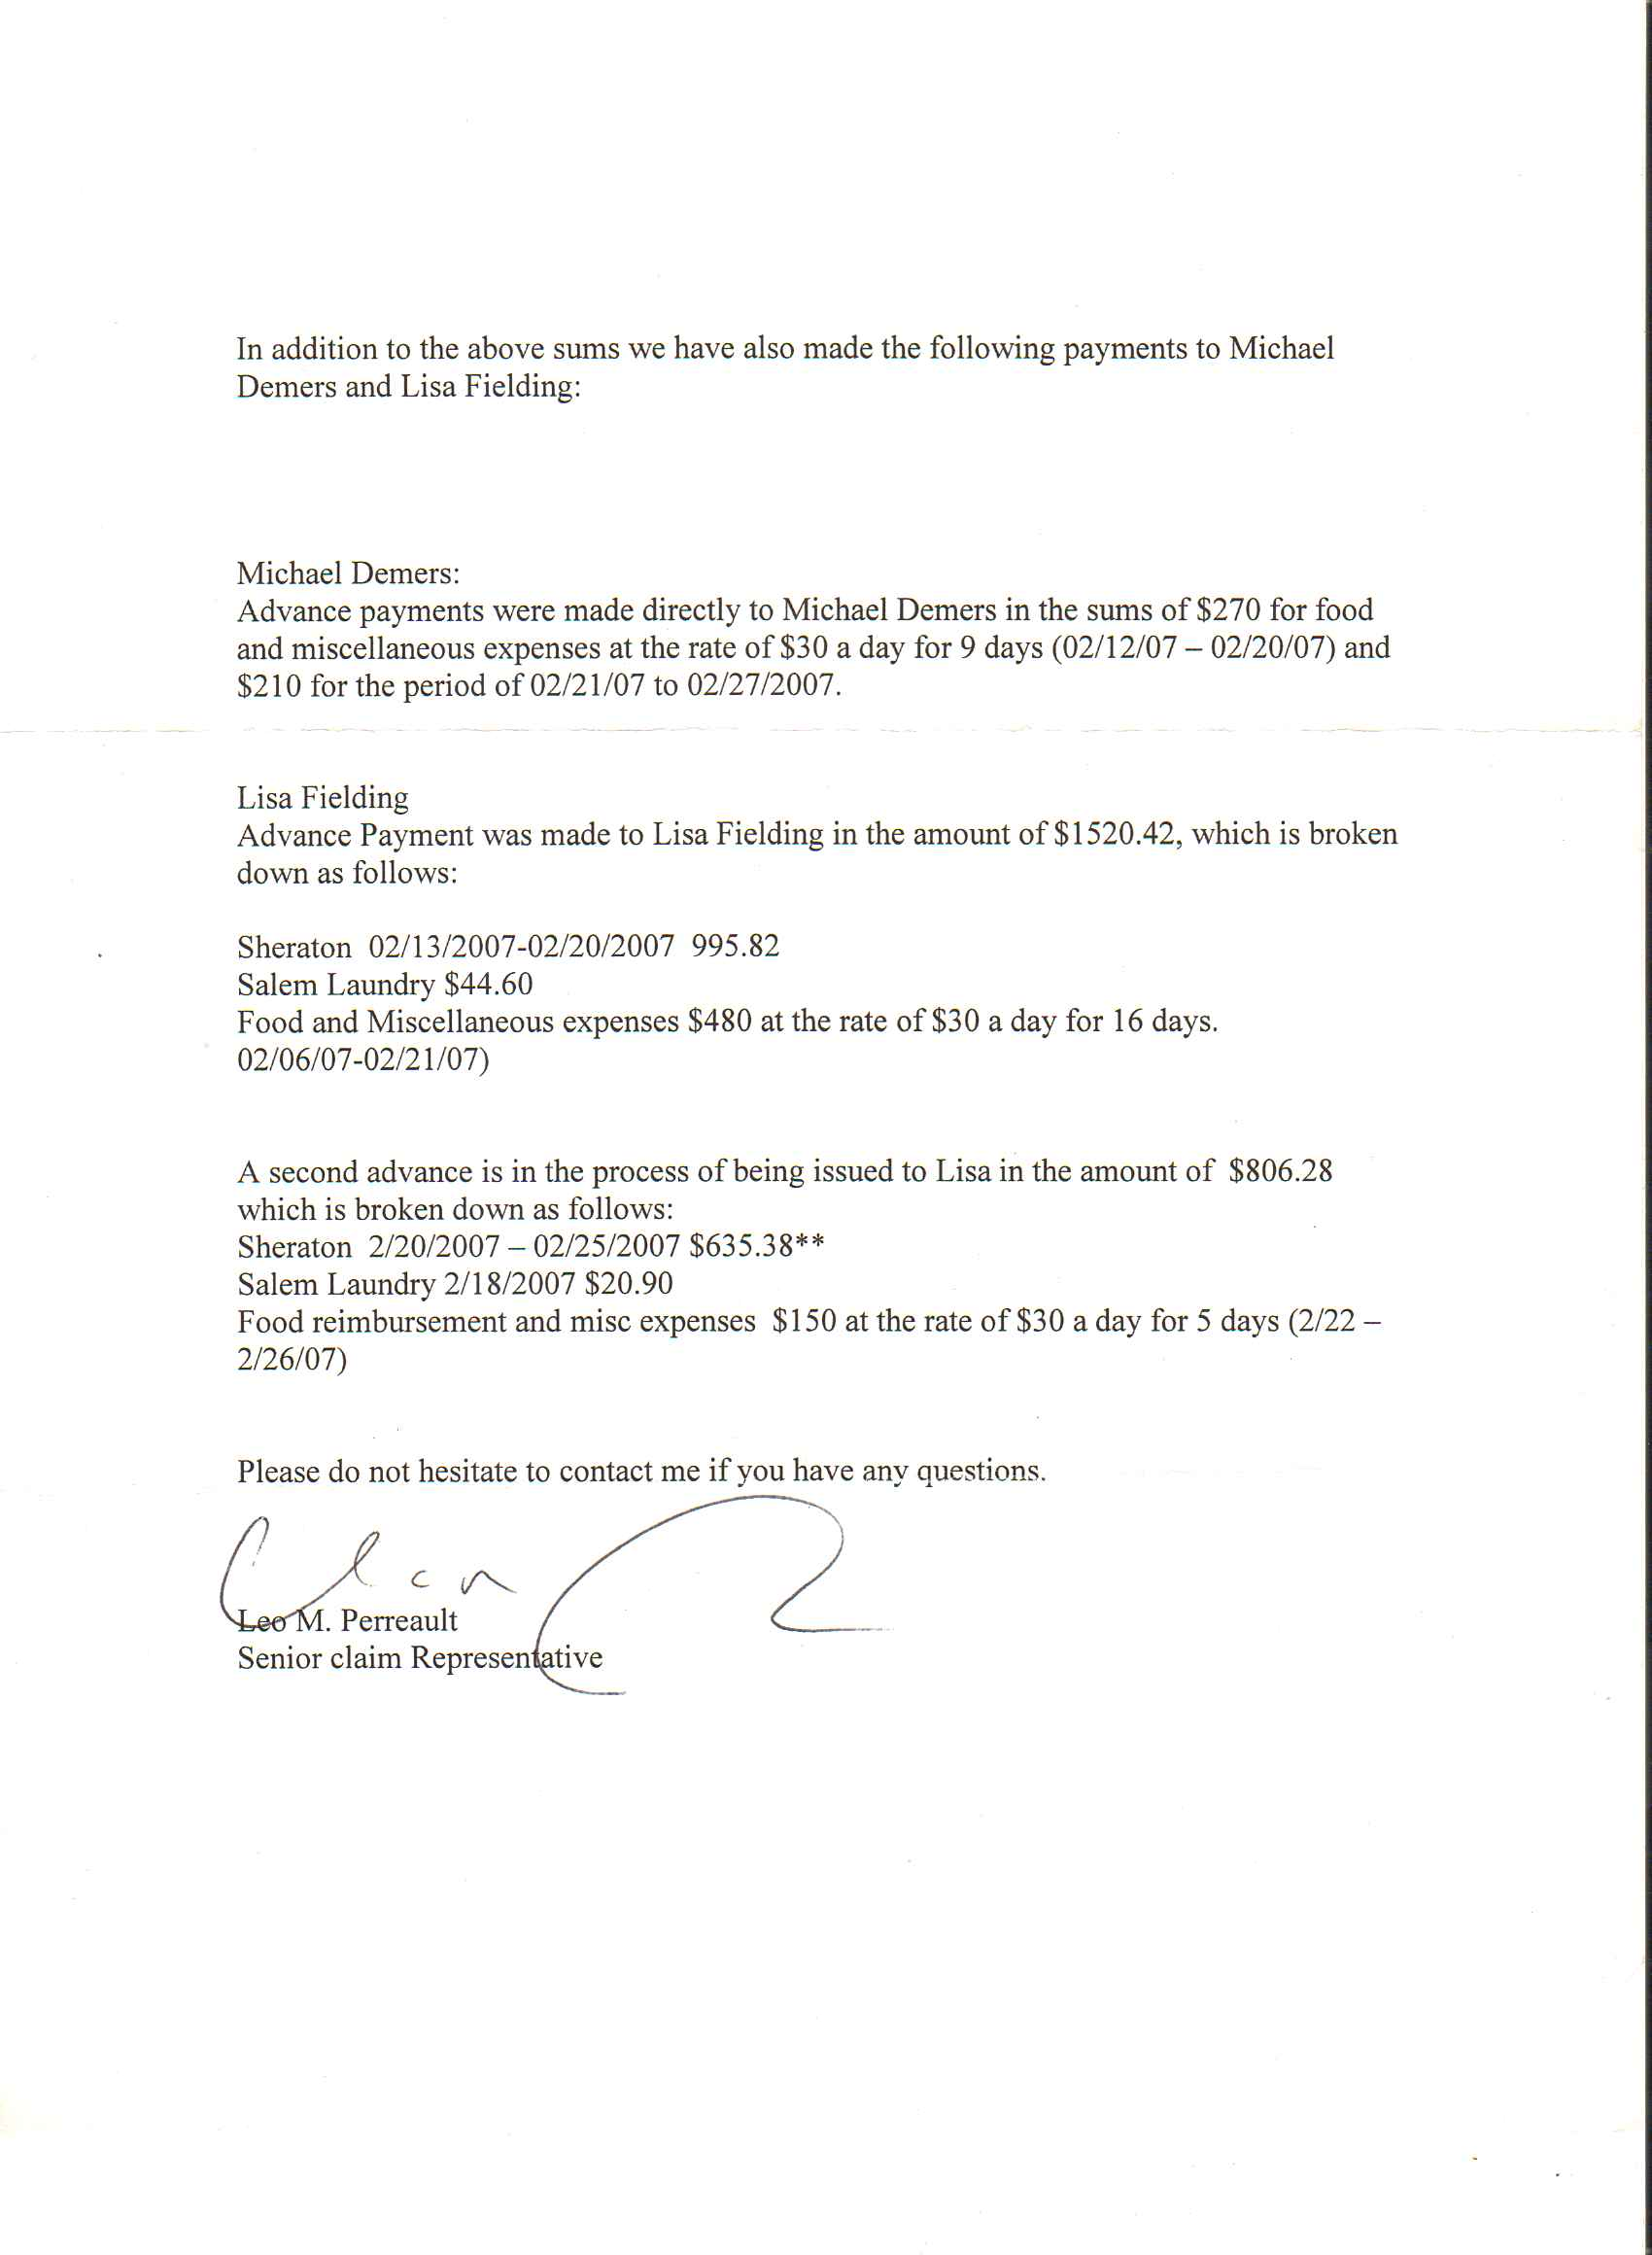 Letter Insurance Company Placing Claim Agency Director